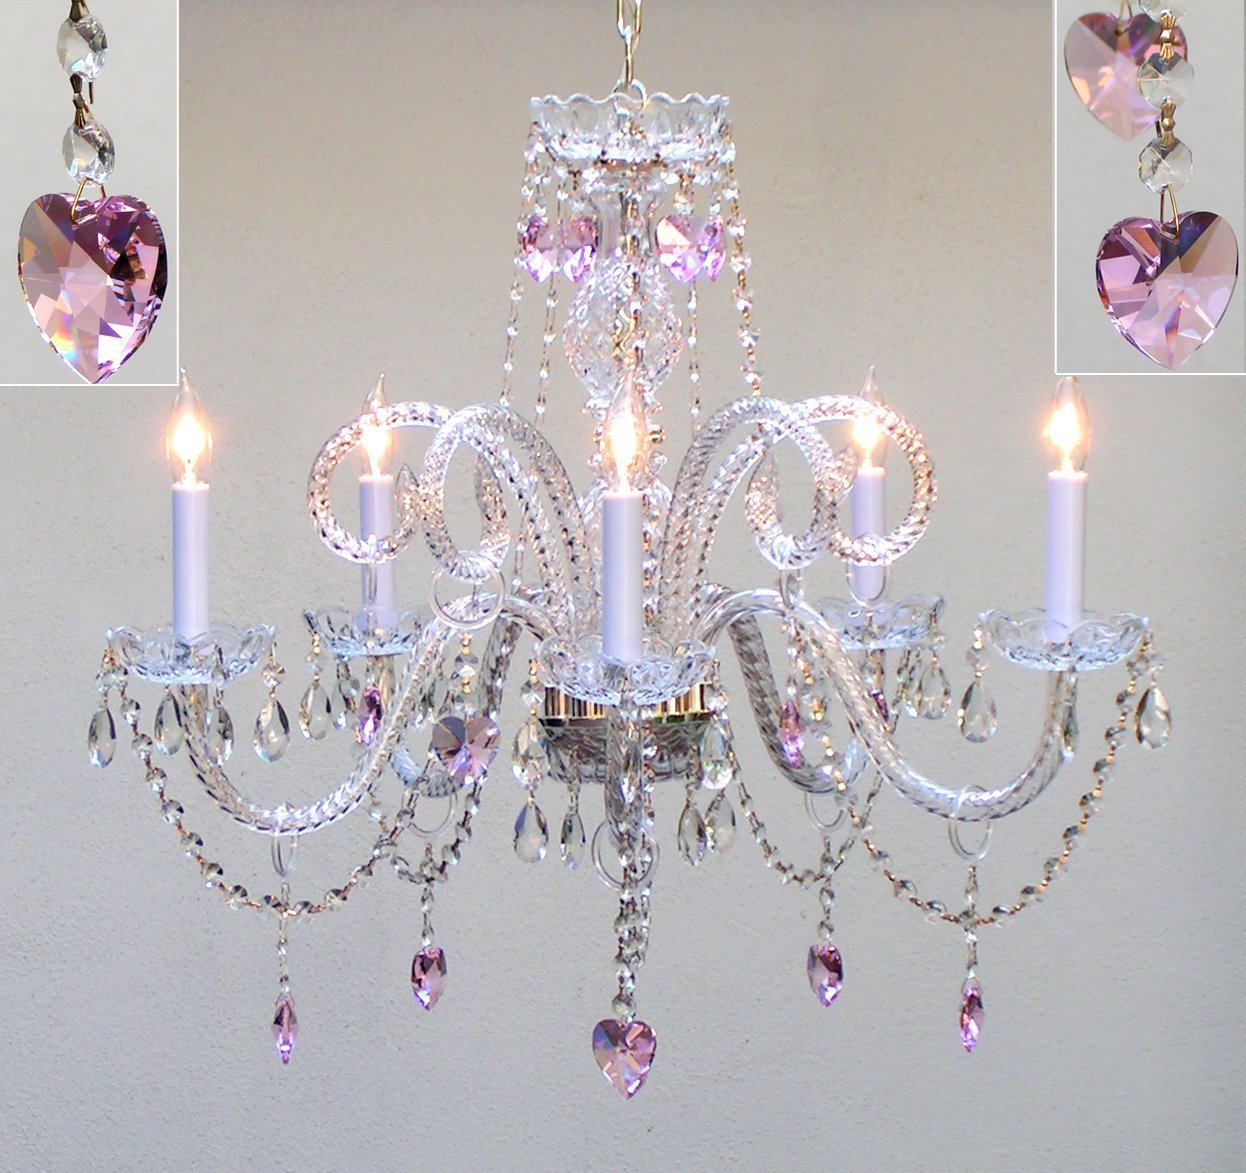 Affordable chandeliers for girls to teens rooms real crystals pink hearts for baby girl to teen chandelier mozeypictures Image collections